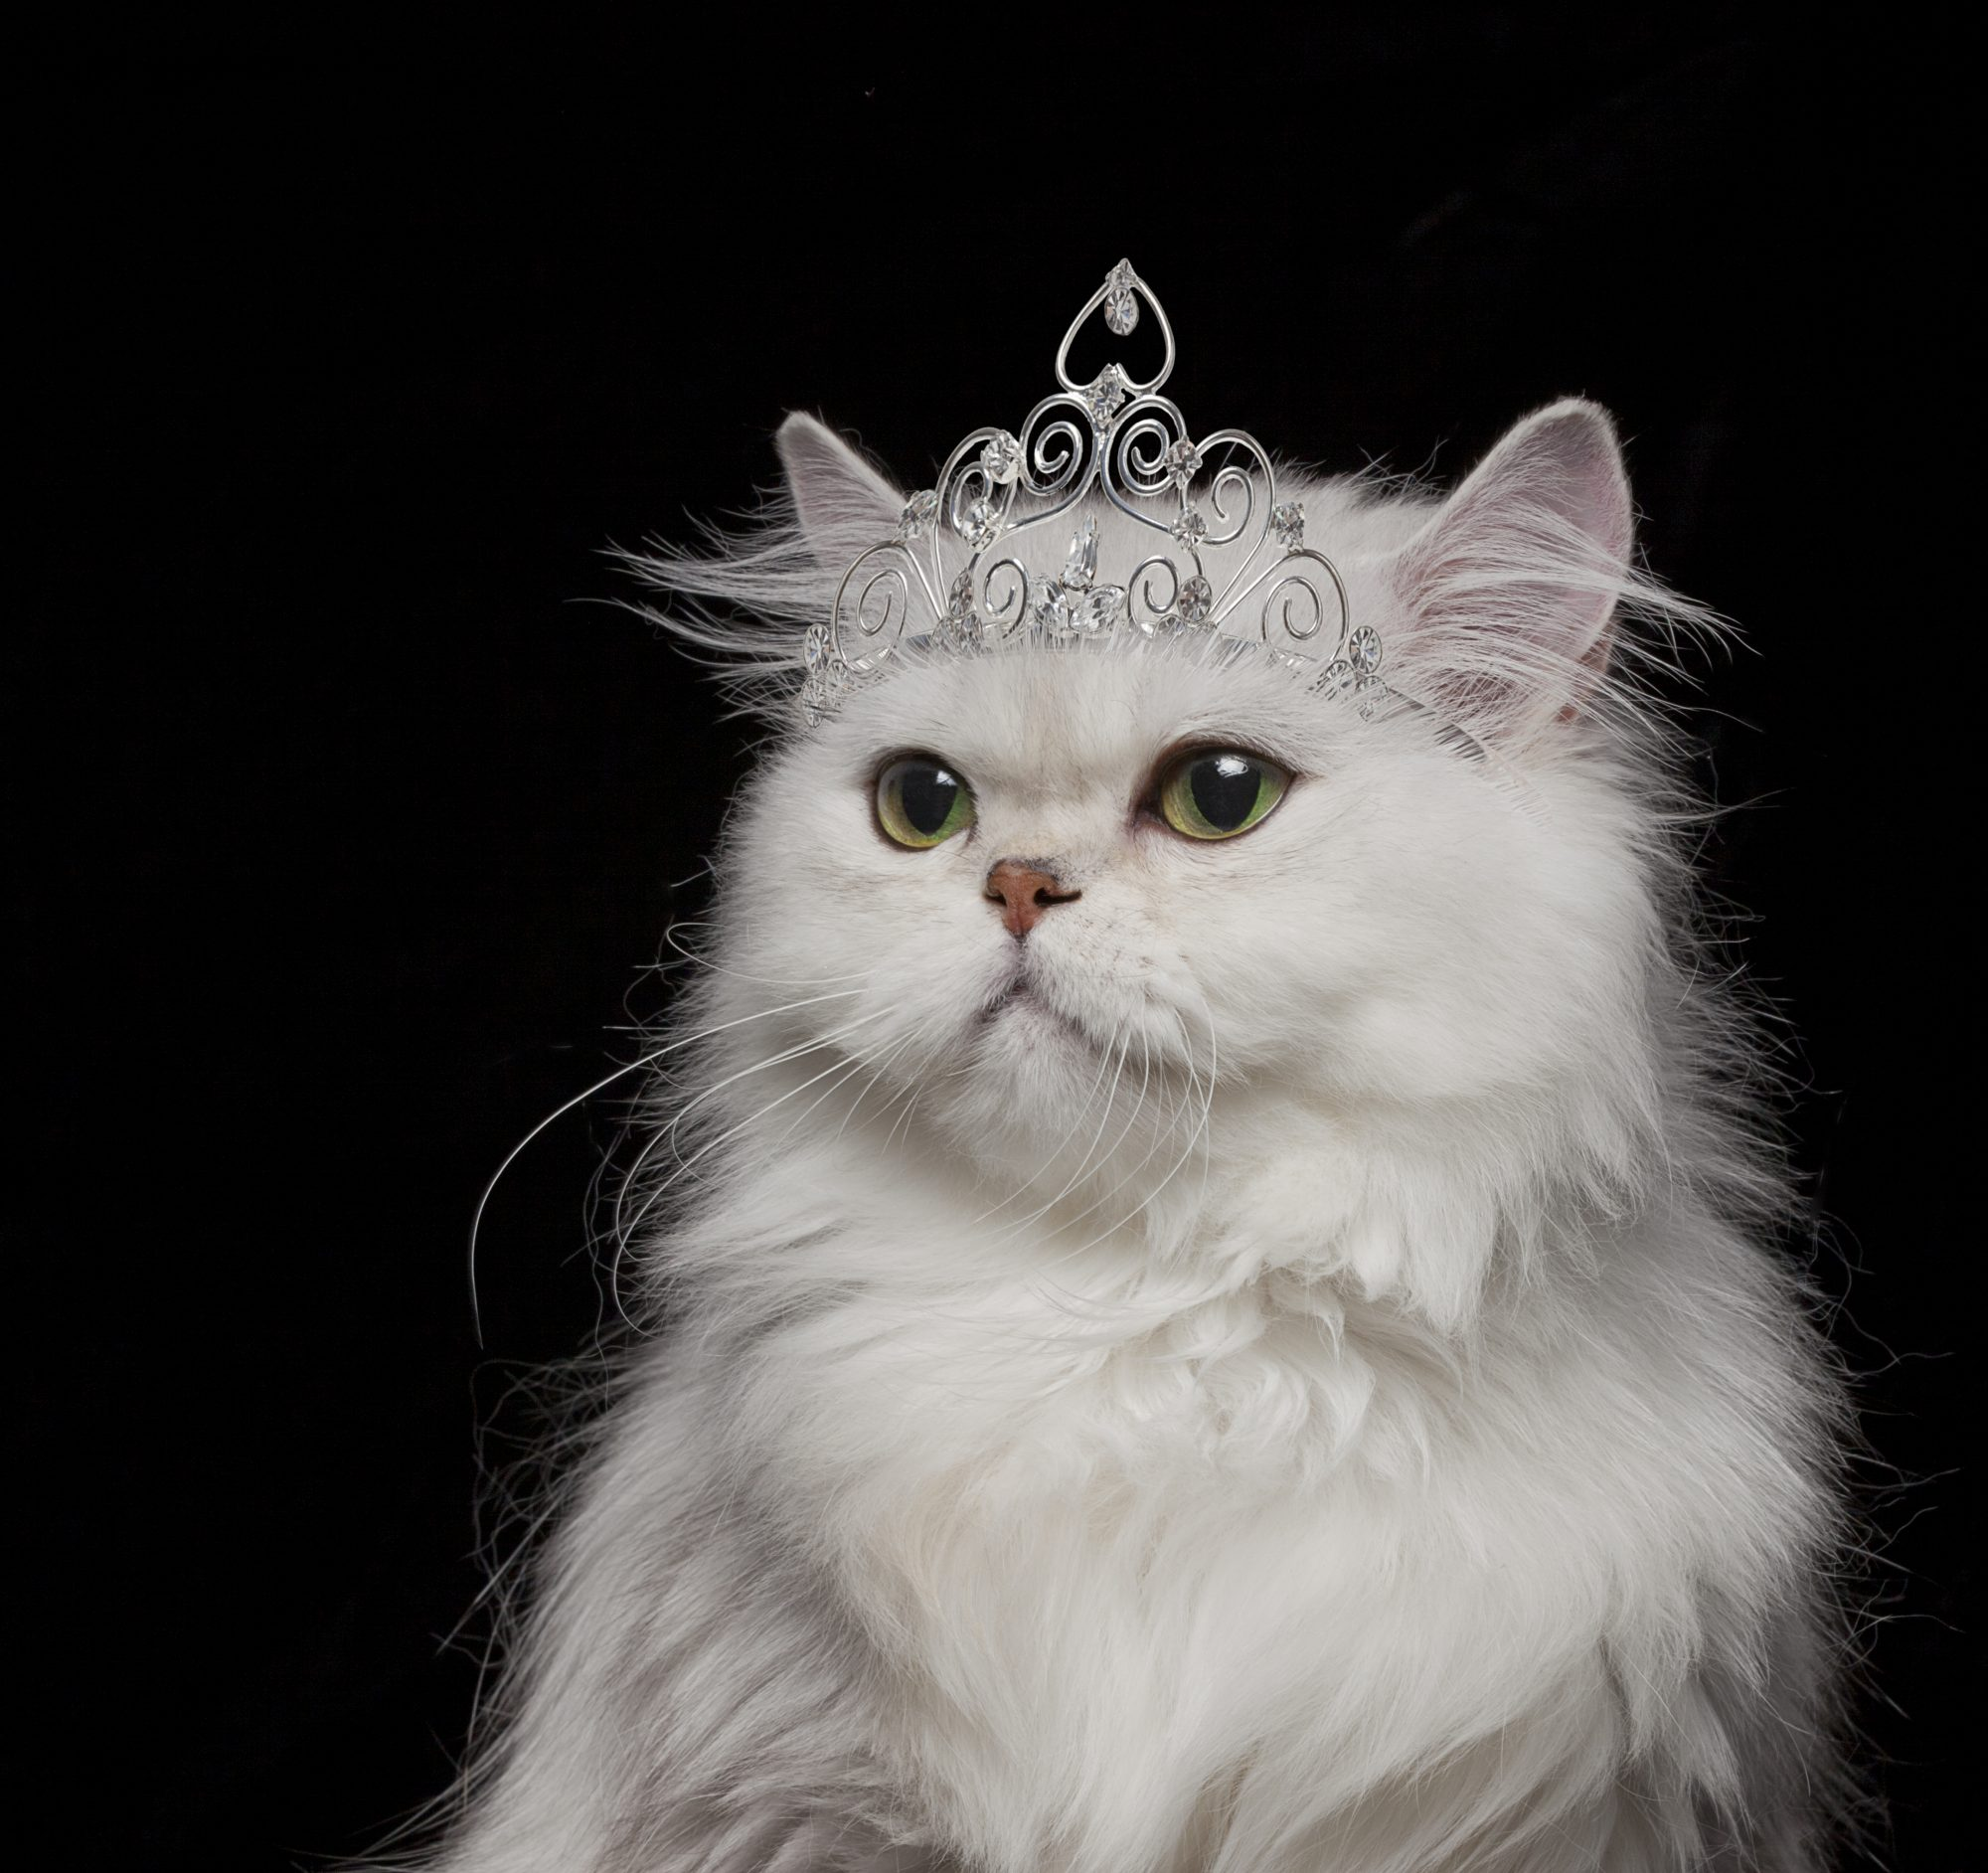 Cat wearing tiara